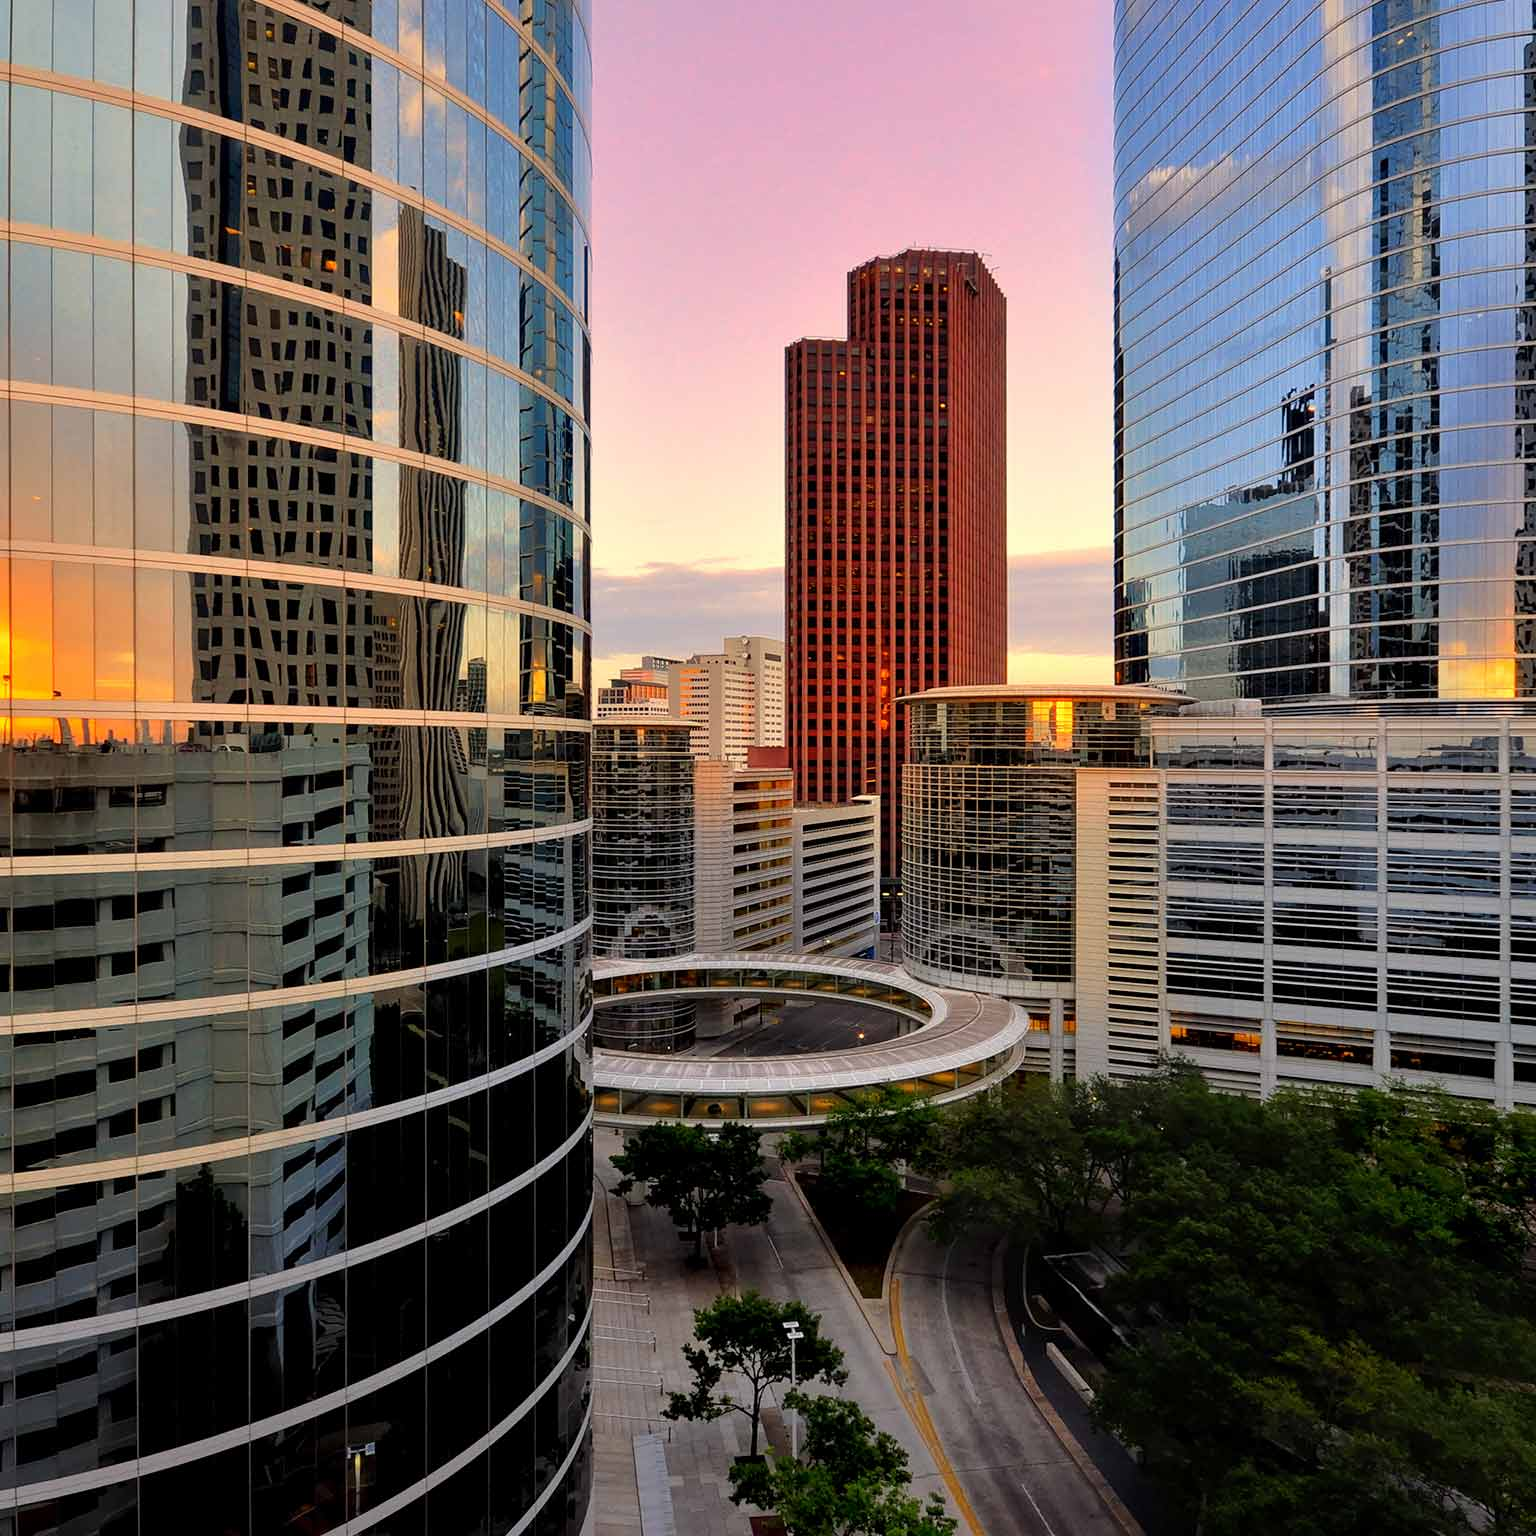 Southern-US_overview_houston_thumb_GettyImages-505290751_1536x1536.jpg